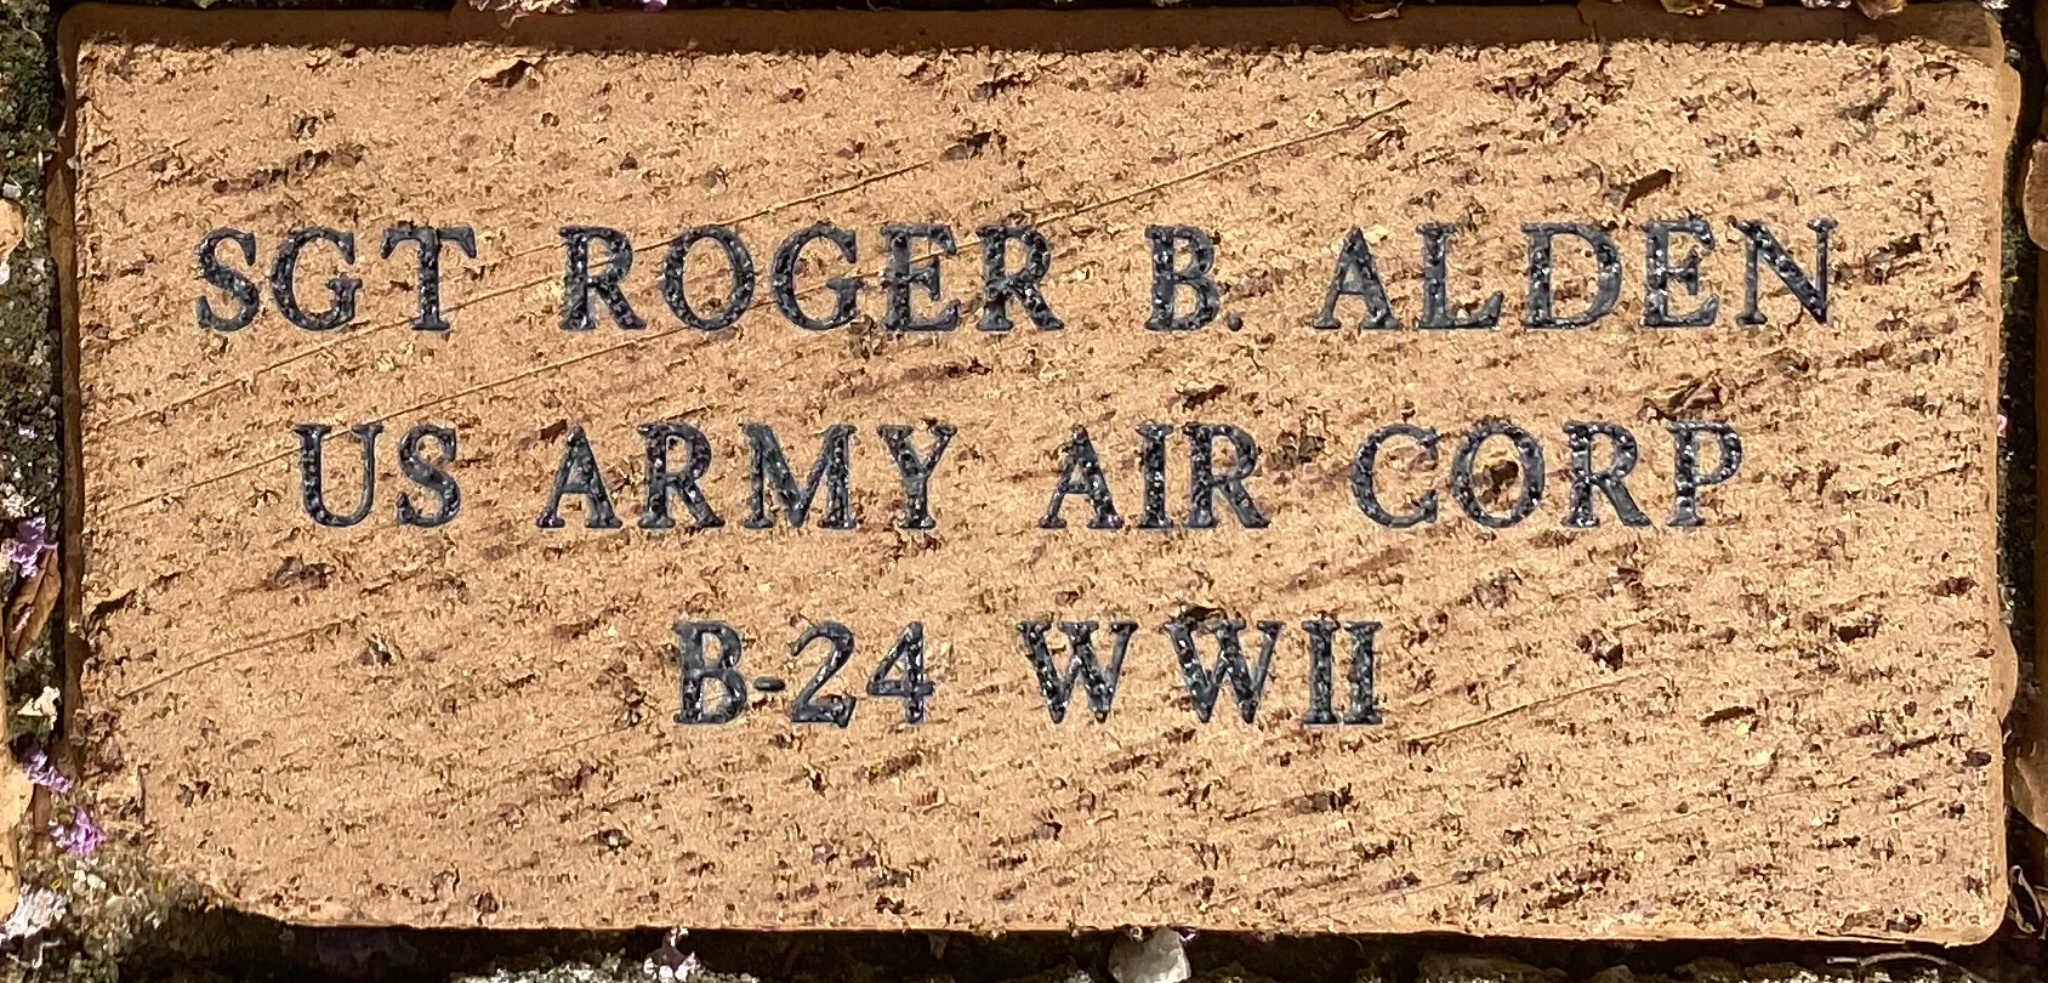 SGT ROGER B. ALDEN US ARMY AIR CORP B-24 WWII